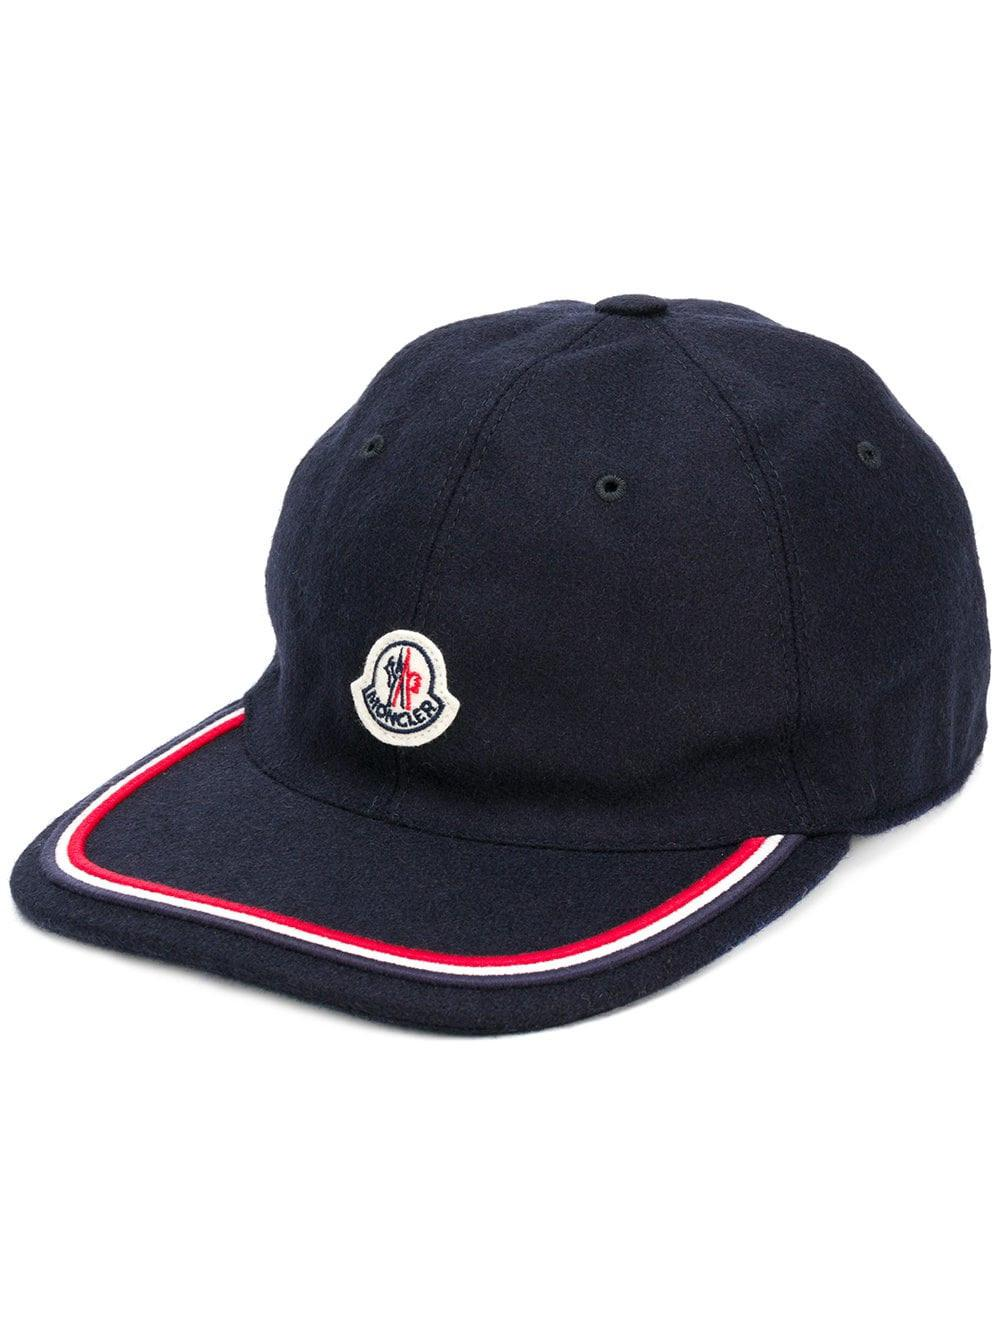 78e4336c3f36 Lyst - Moncler Piped Logo Patch Cap in Blue for Men - Save 51%